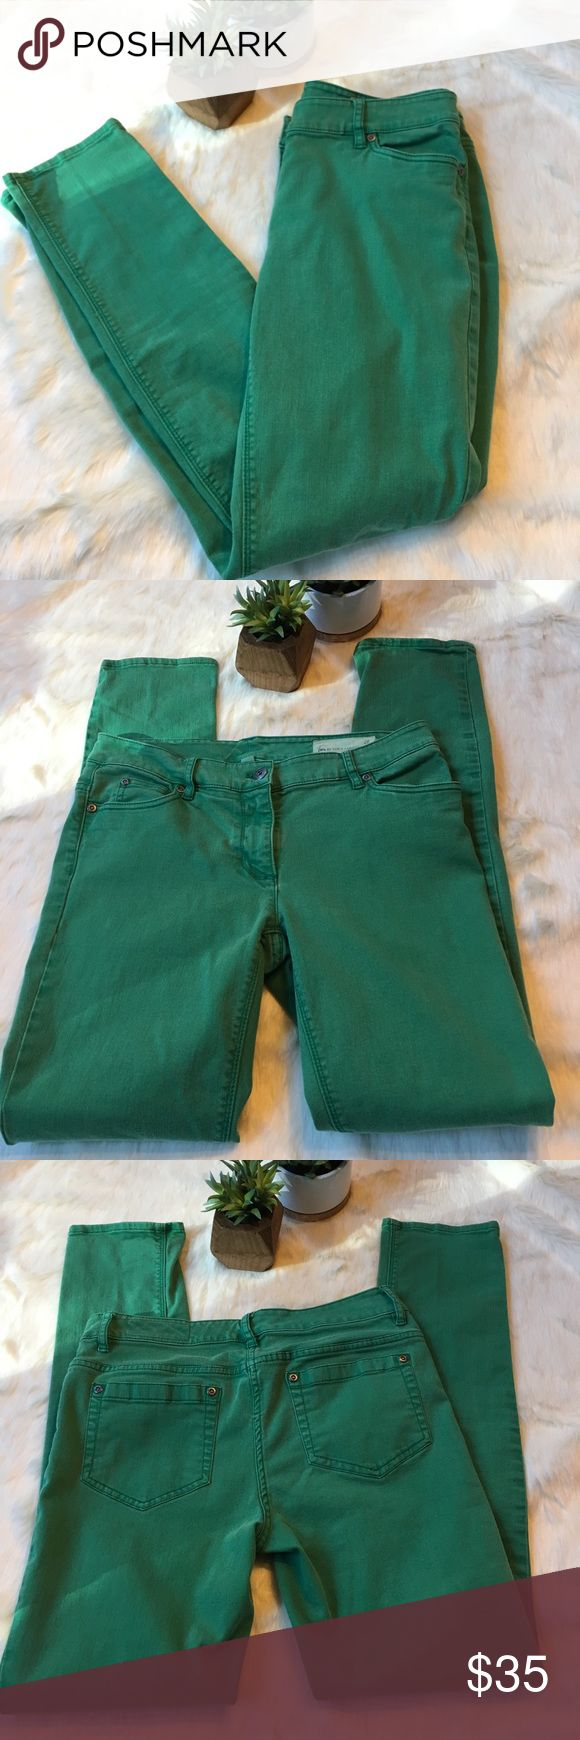 "Two by Vince Camuto green skinny jeans Soft and stretchy skinny jeans. Pre-faded green. 29"" inseam. Two by Vince Camuto Jeans Skinny"